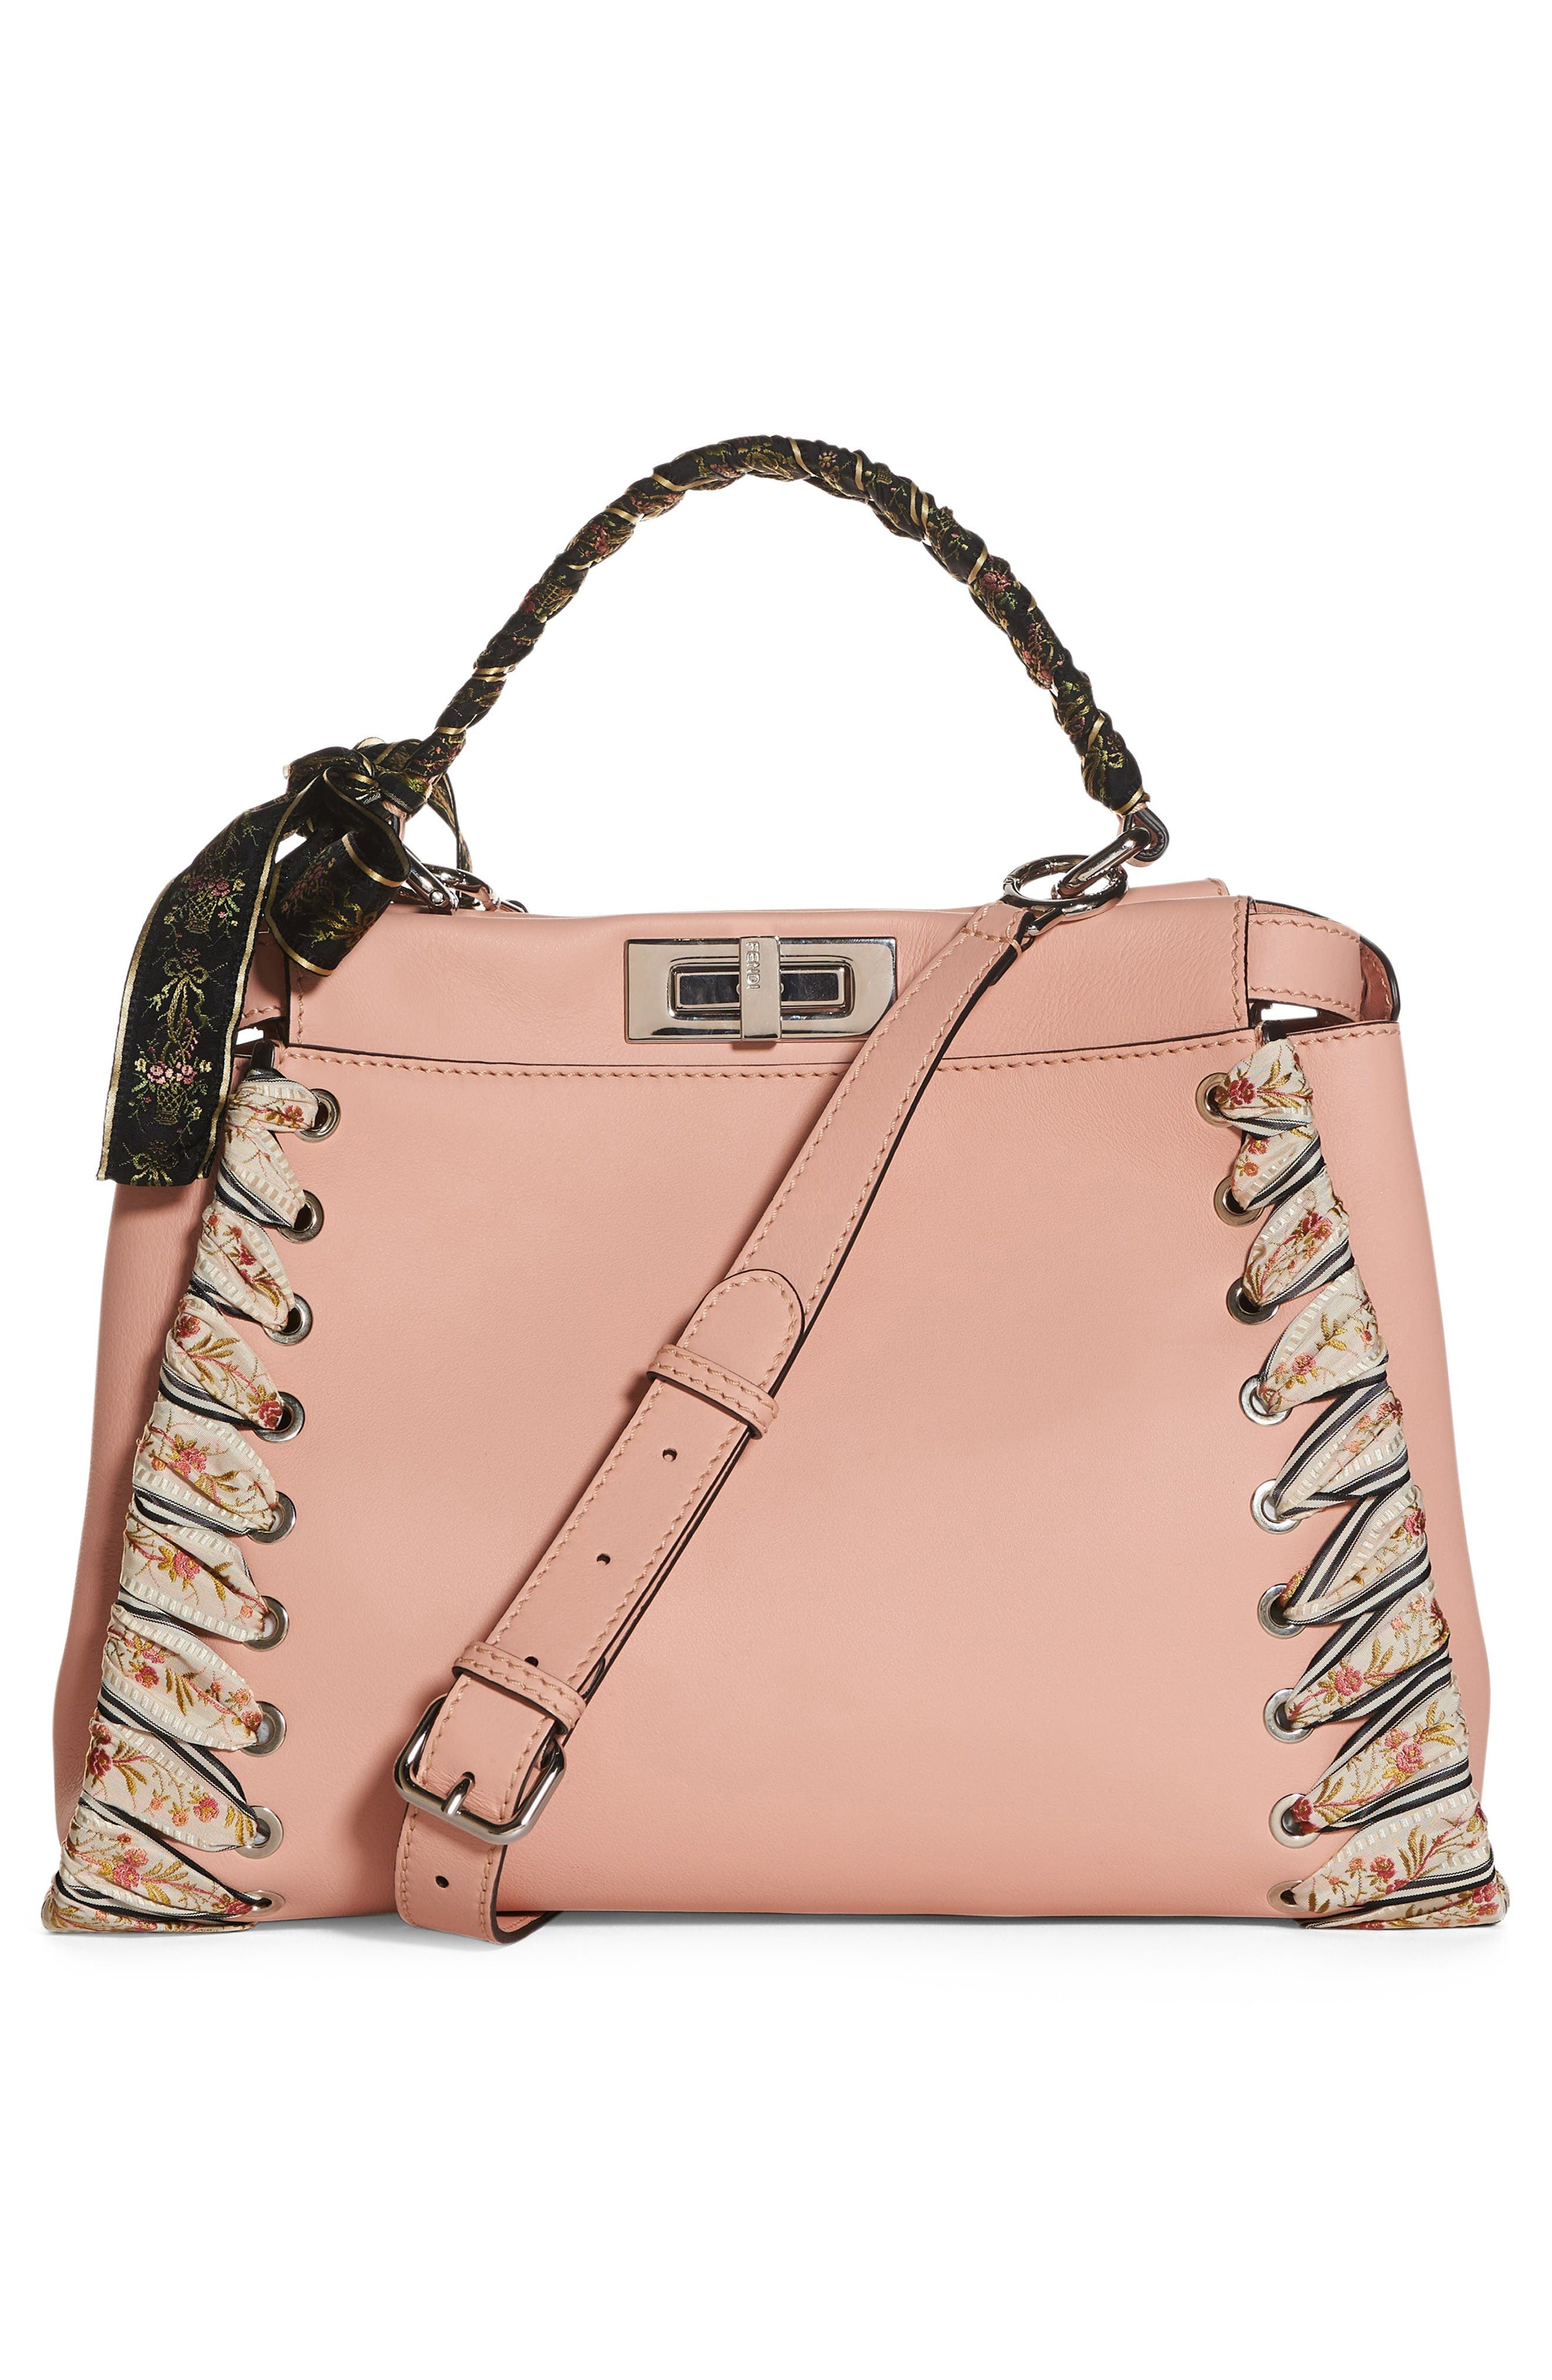 Medium Peekaboo Whipstitched Leather Satchel,                             Alternate thumbnail 2, color,                             Baby Pink